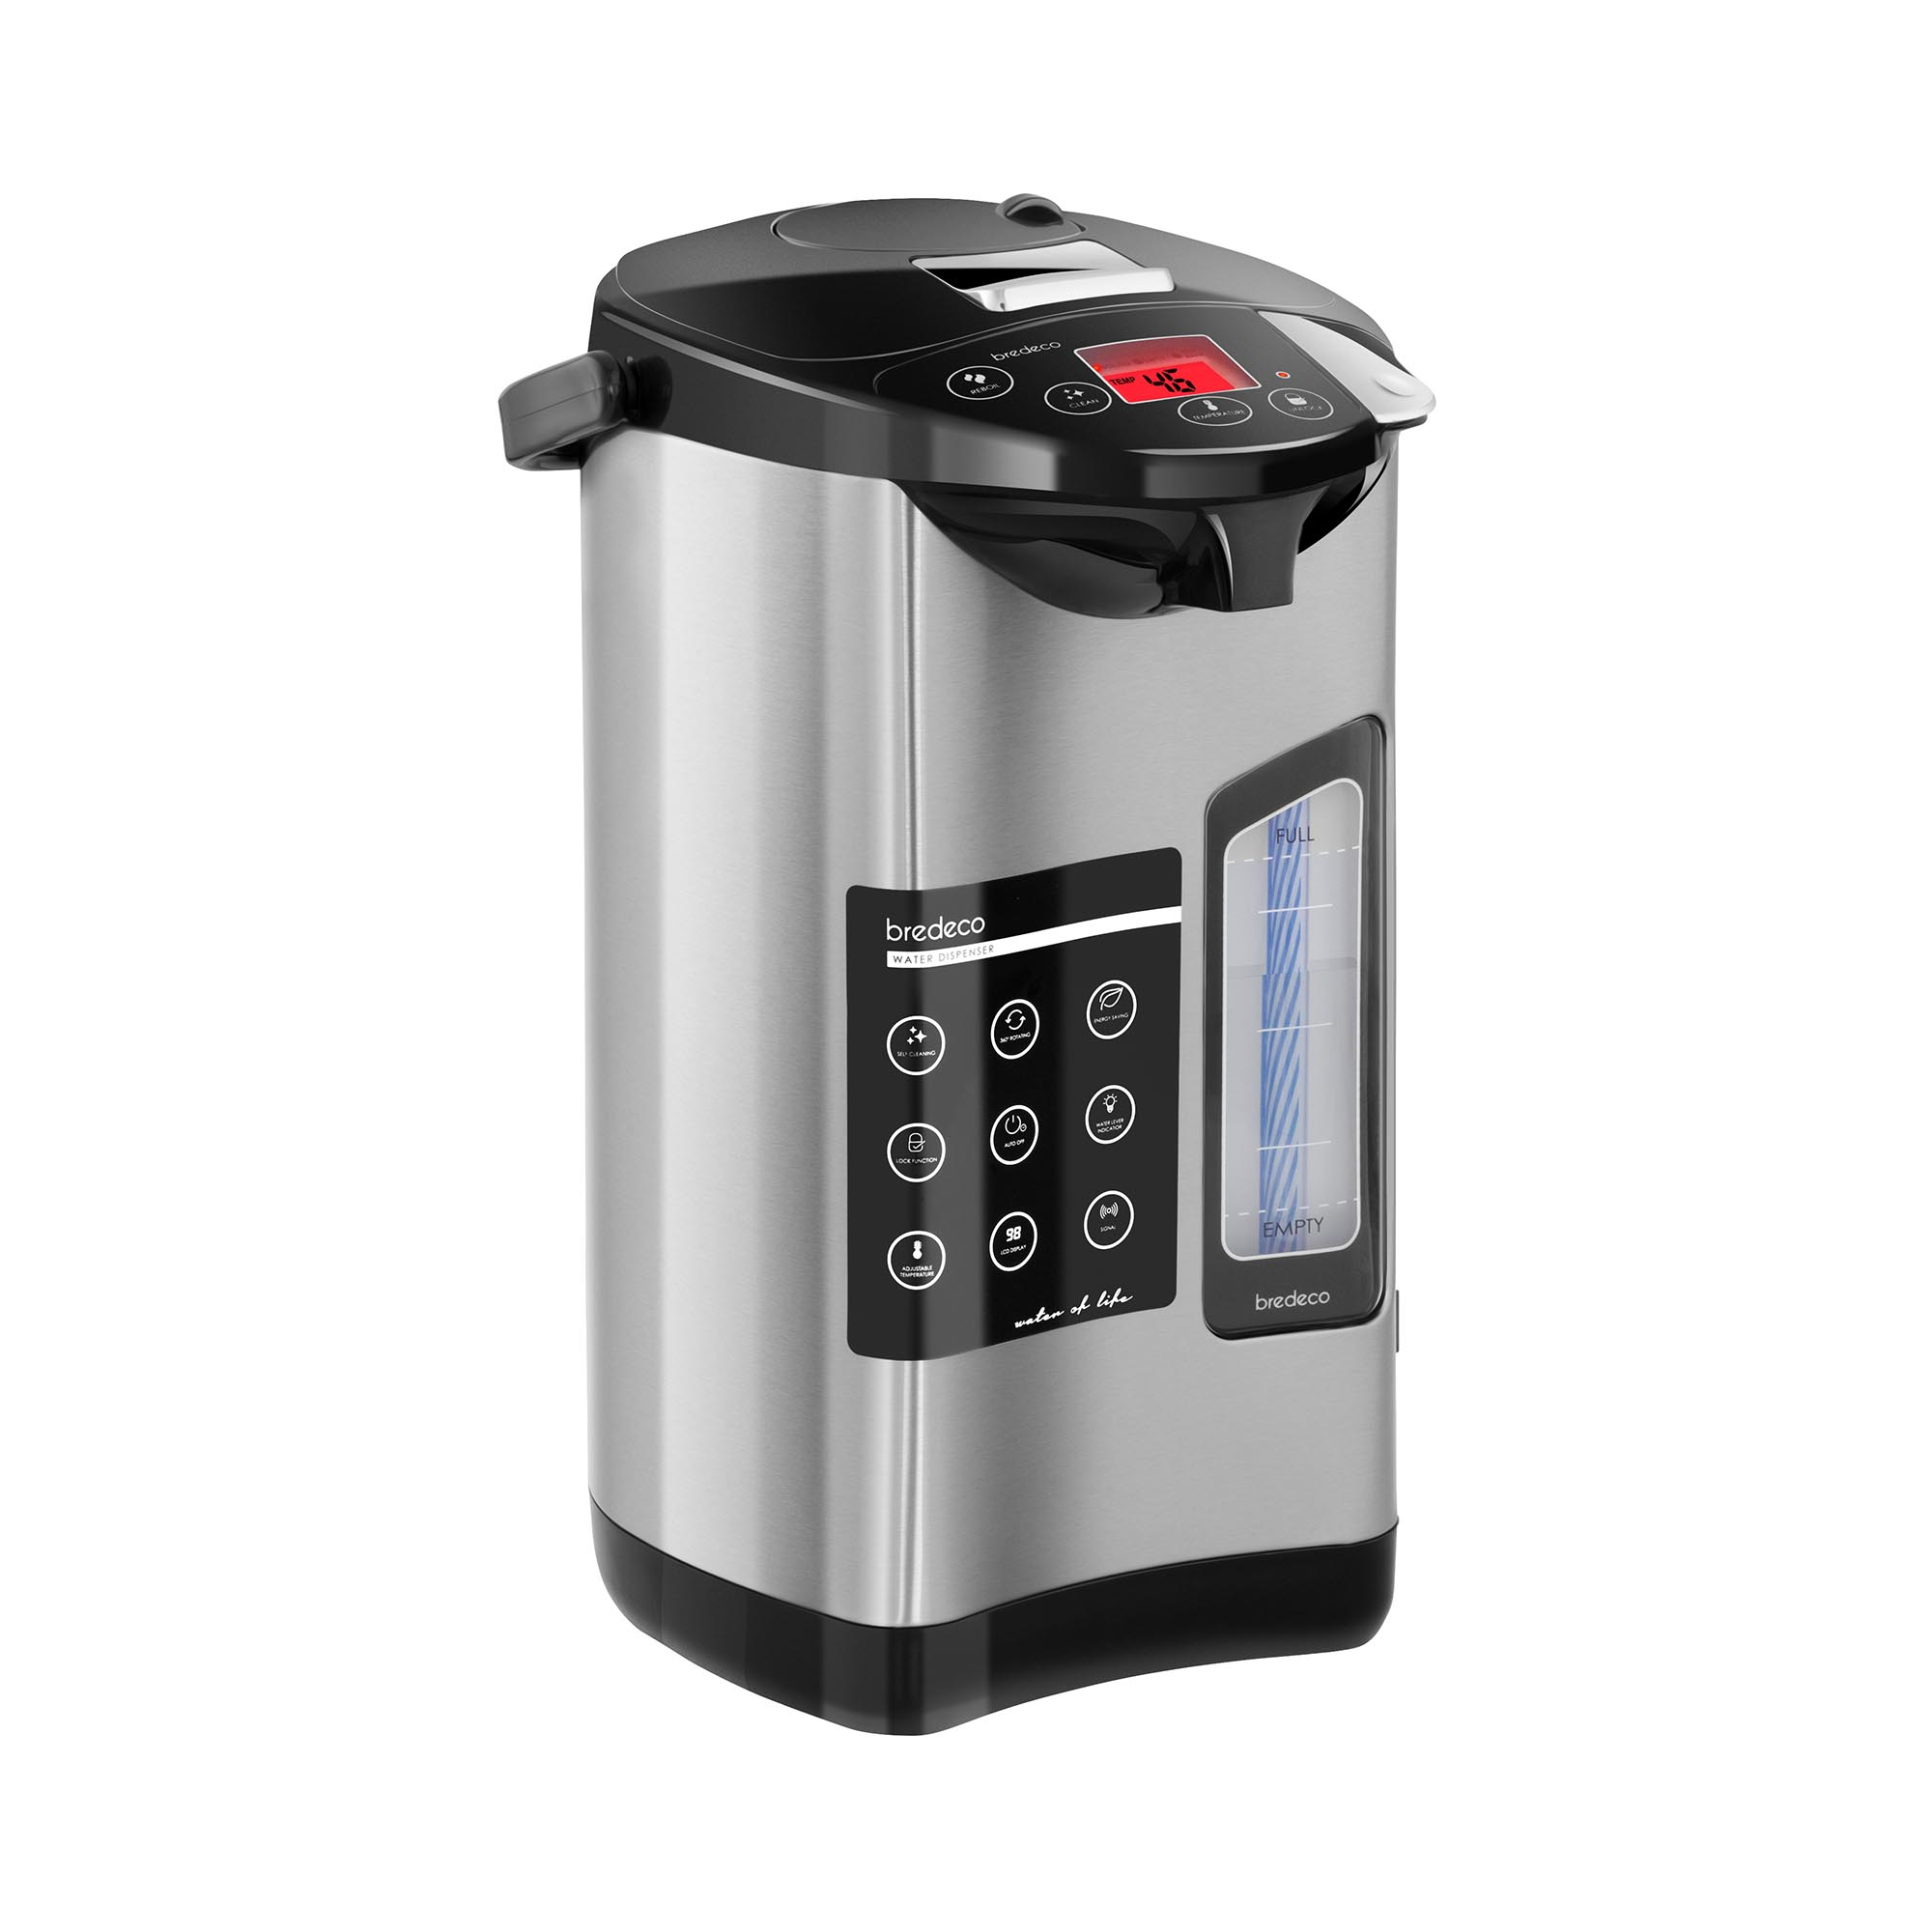 bredeco Thermopot - 5 Liter BCTP-5-L